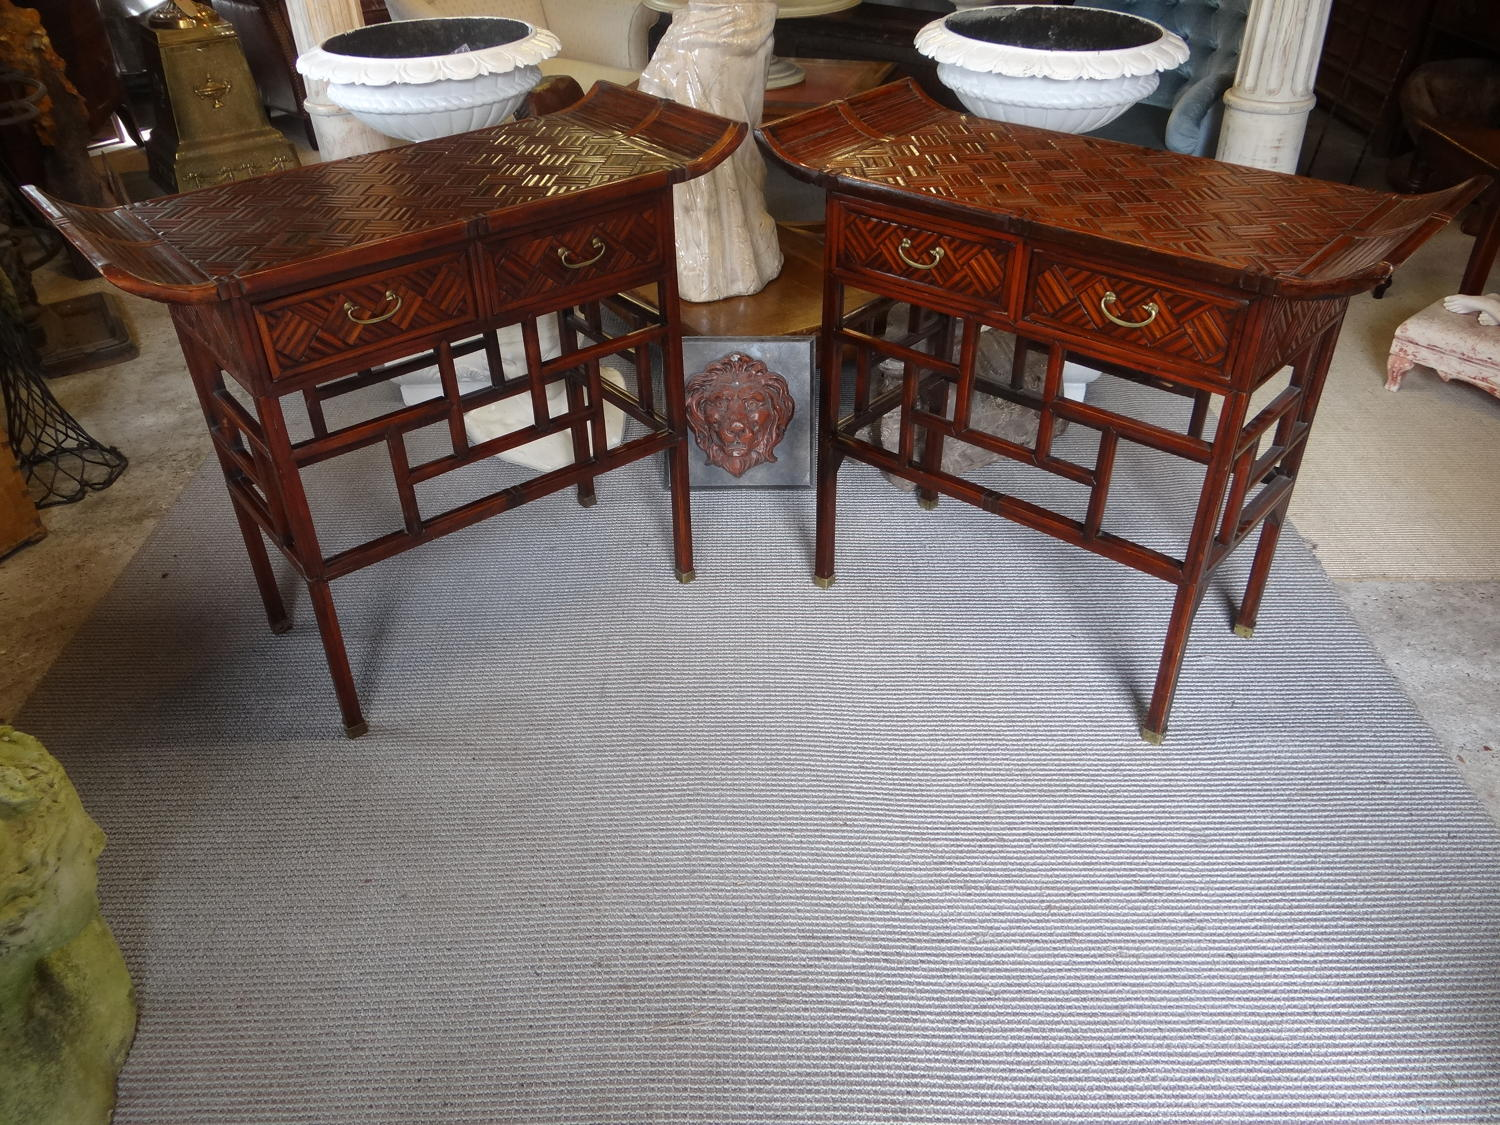 A pair of Chinese side tables.